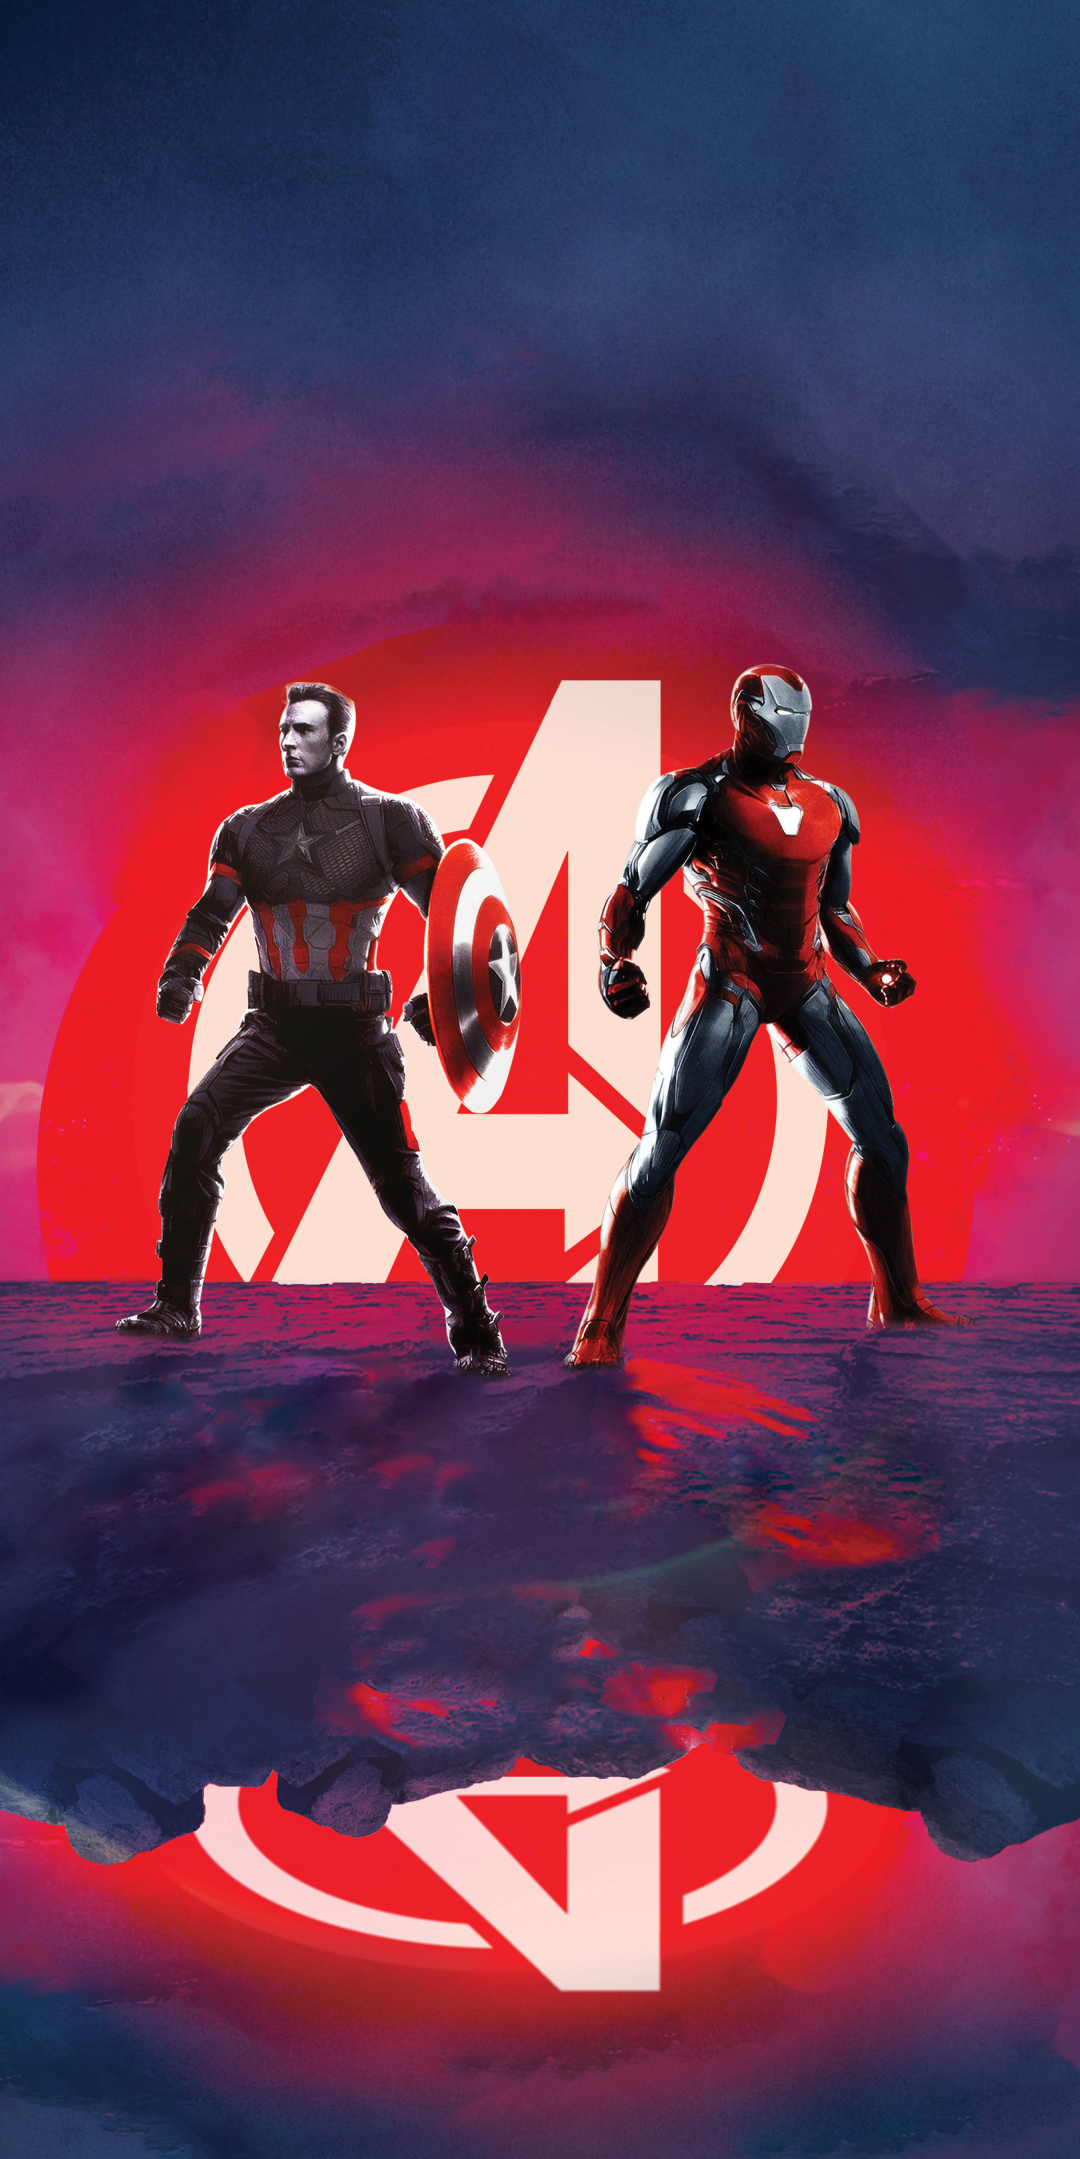 Captain America and Iron Man Avengers Endgame Wallpaper in 1080x2160 Resolution